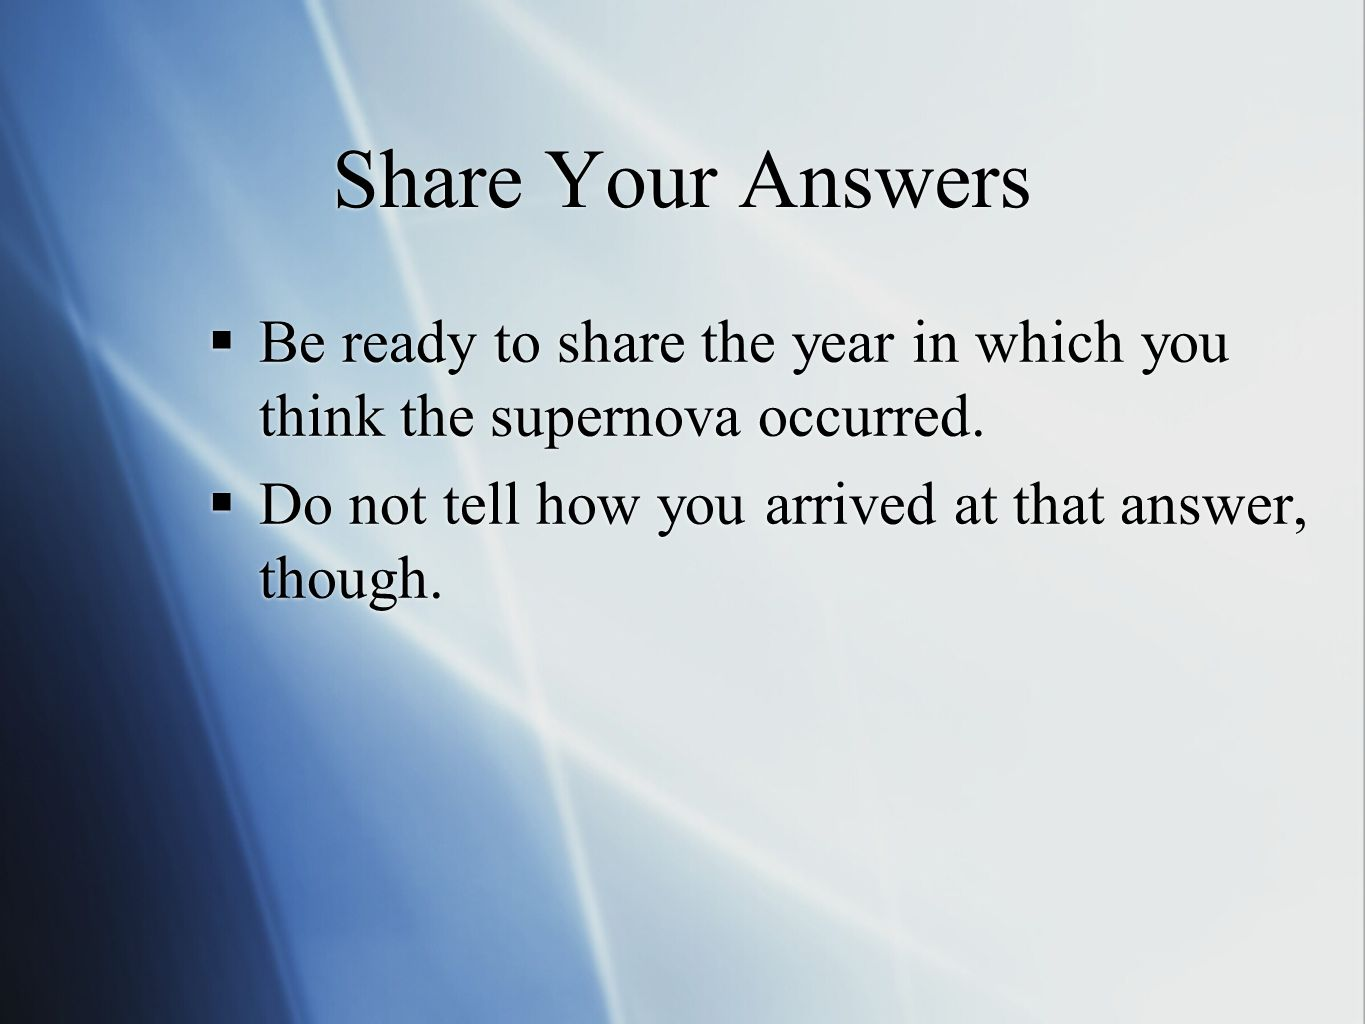 Share Your Answers Be ready to share the year in which you think the supernova occurred.